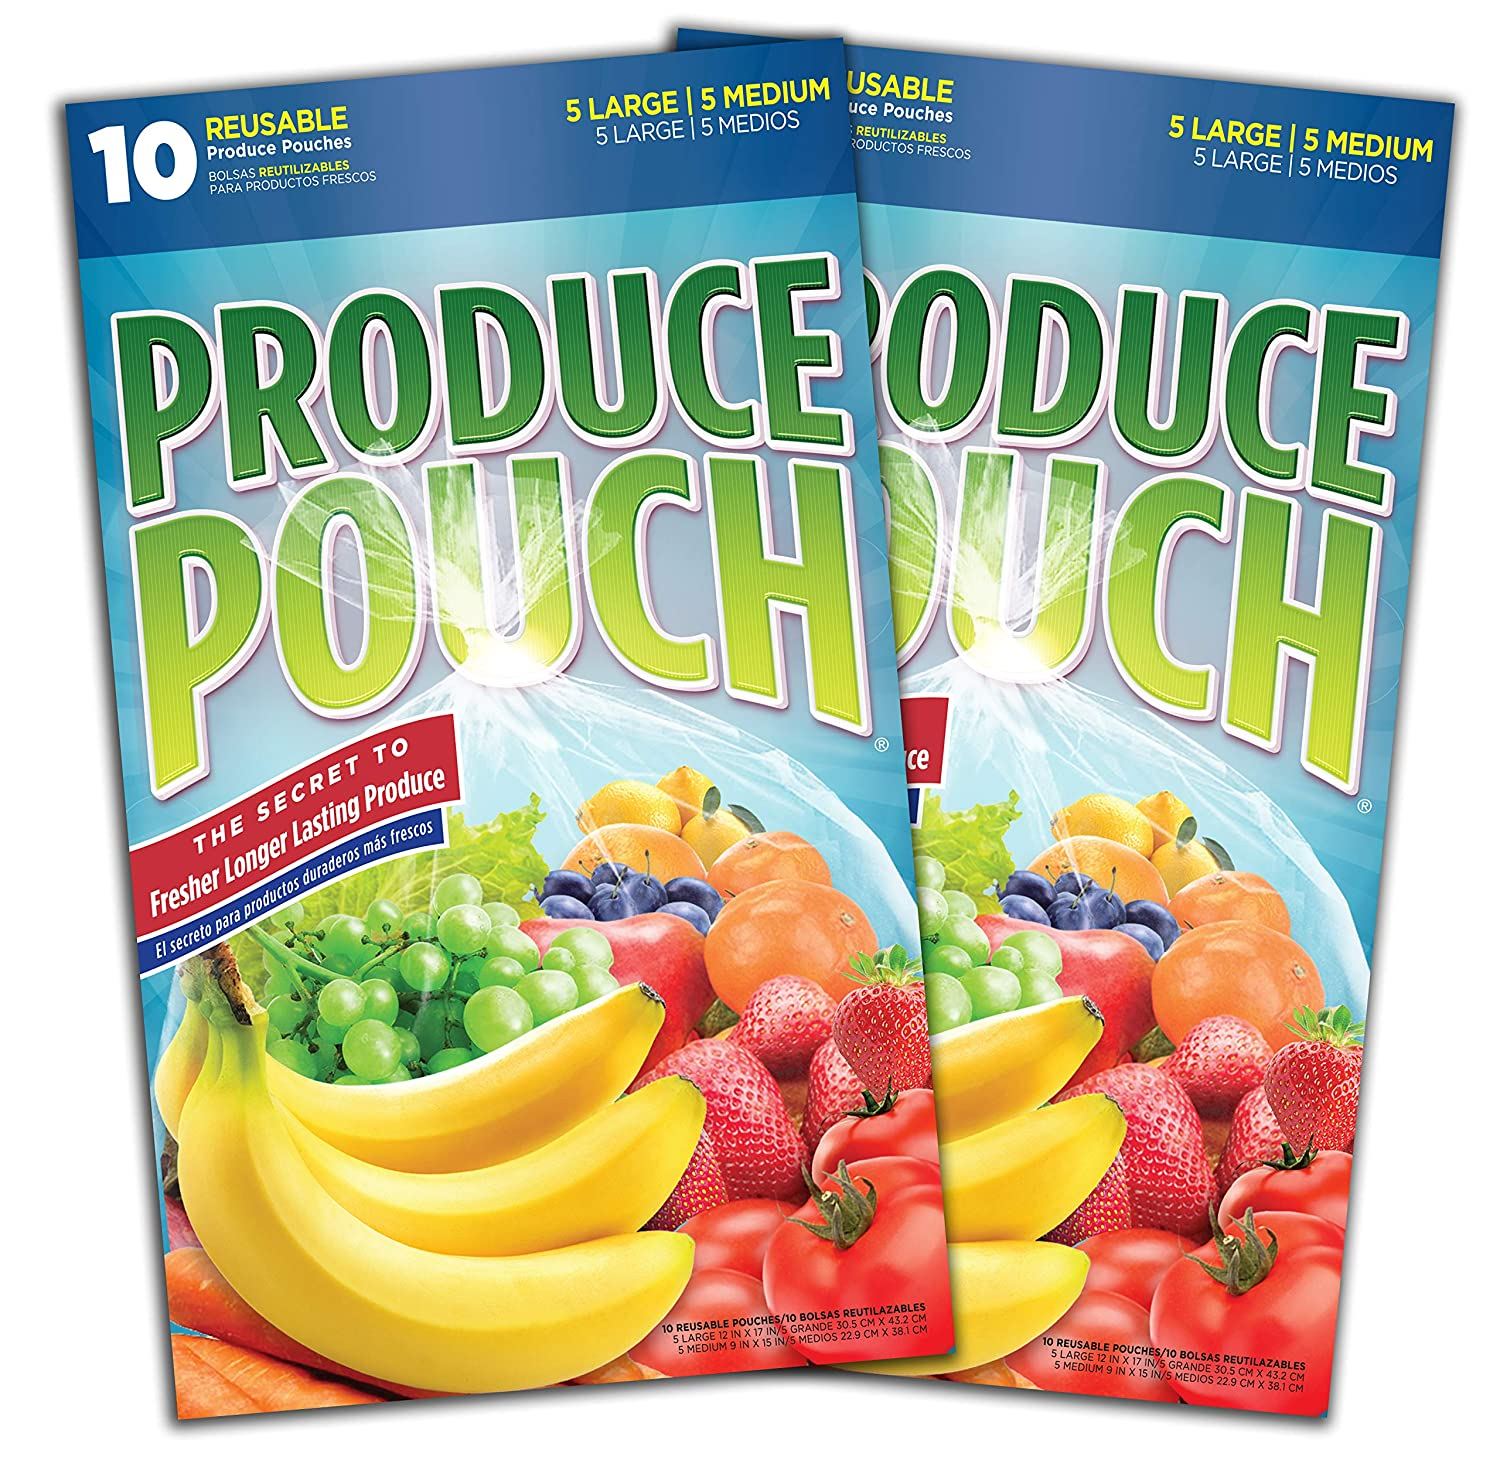 Produce Pouch-Keeps Produce Fresher Longer, reusable green bags preserve fruits, vegetables and...